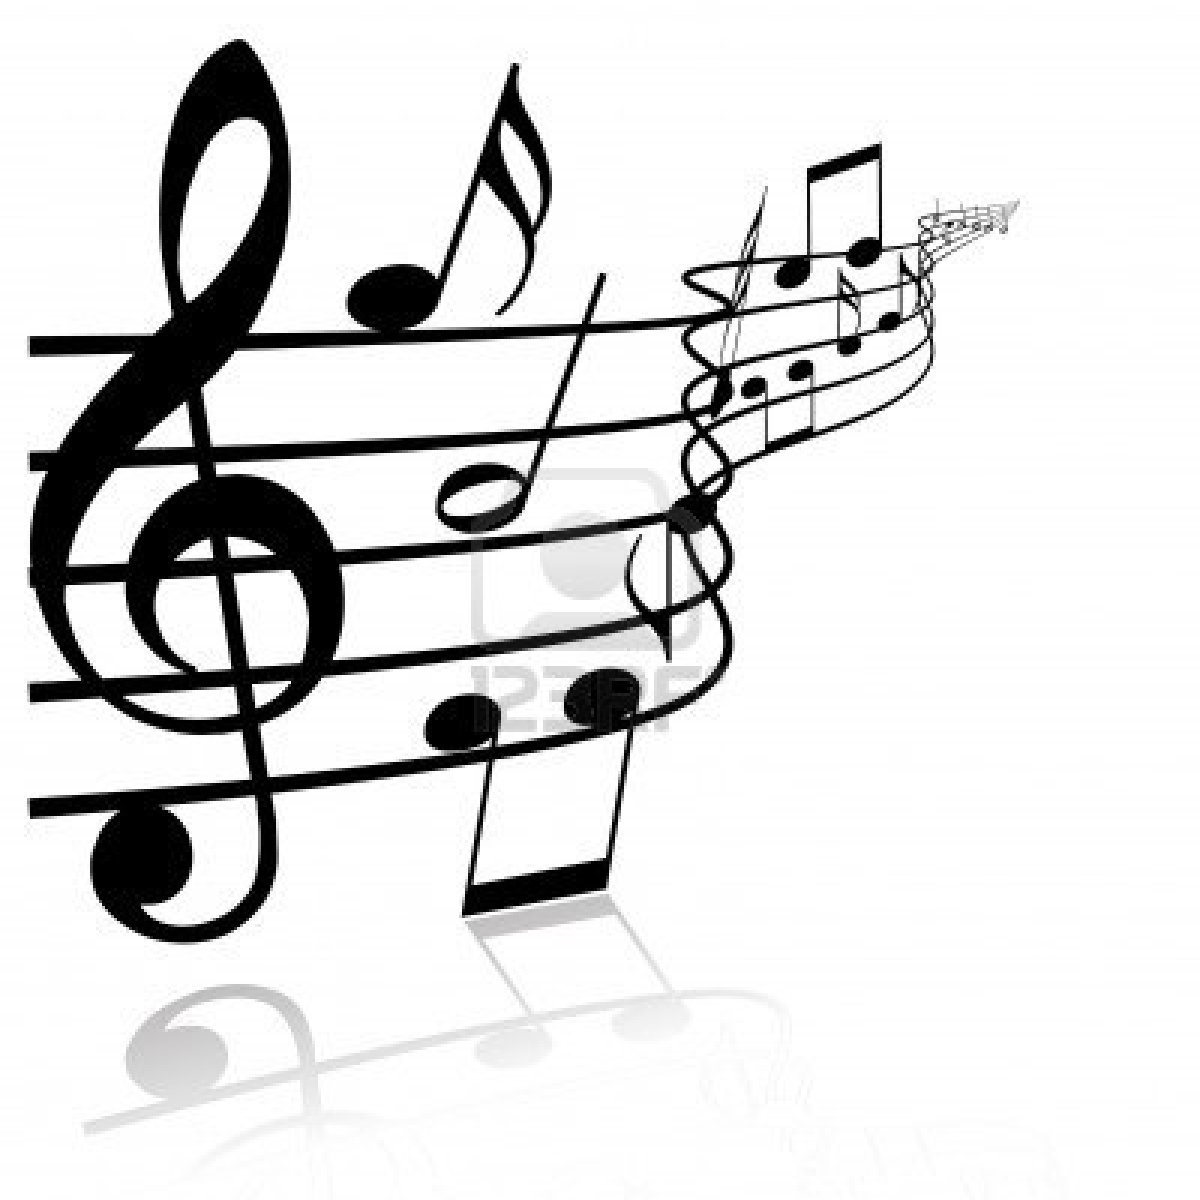 Free background download clip. Musician clipart music theme